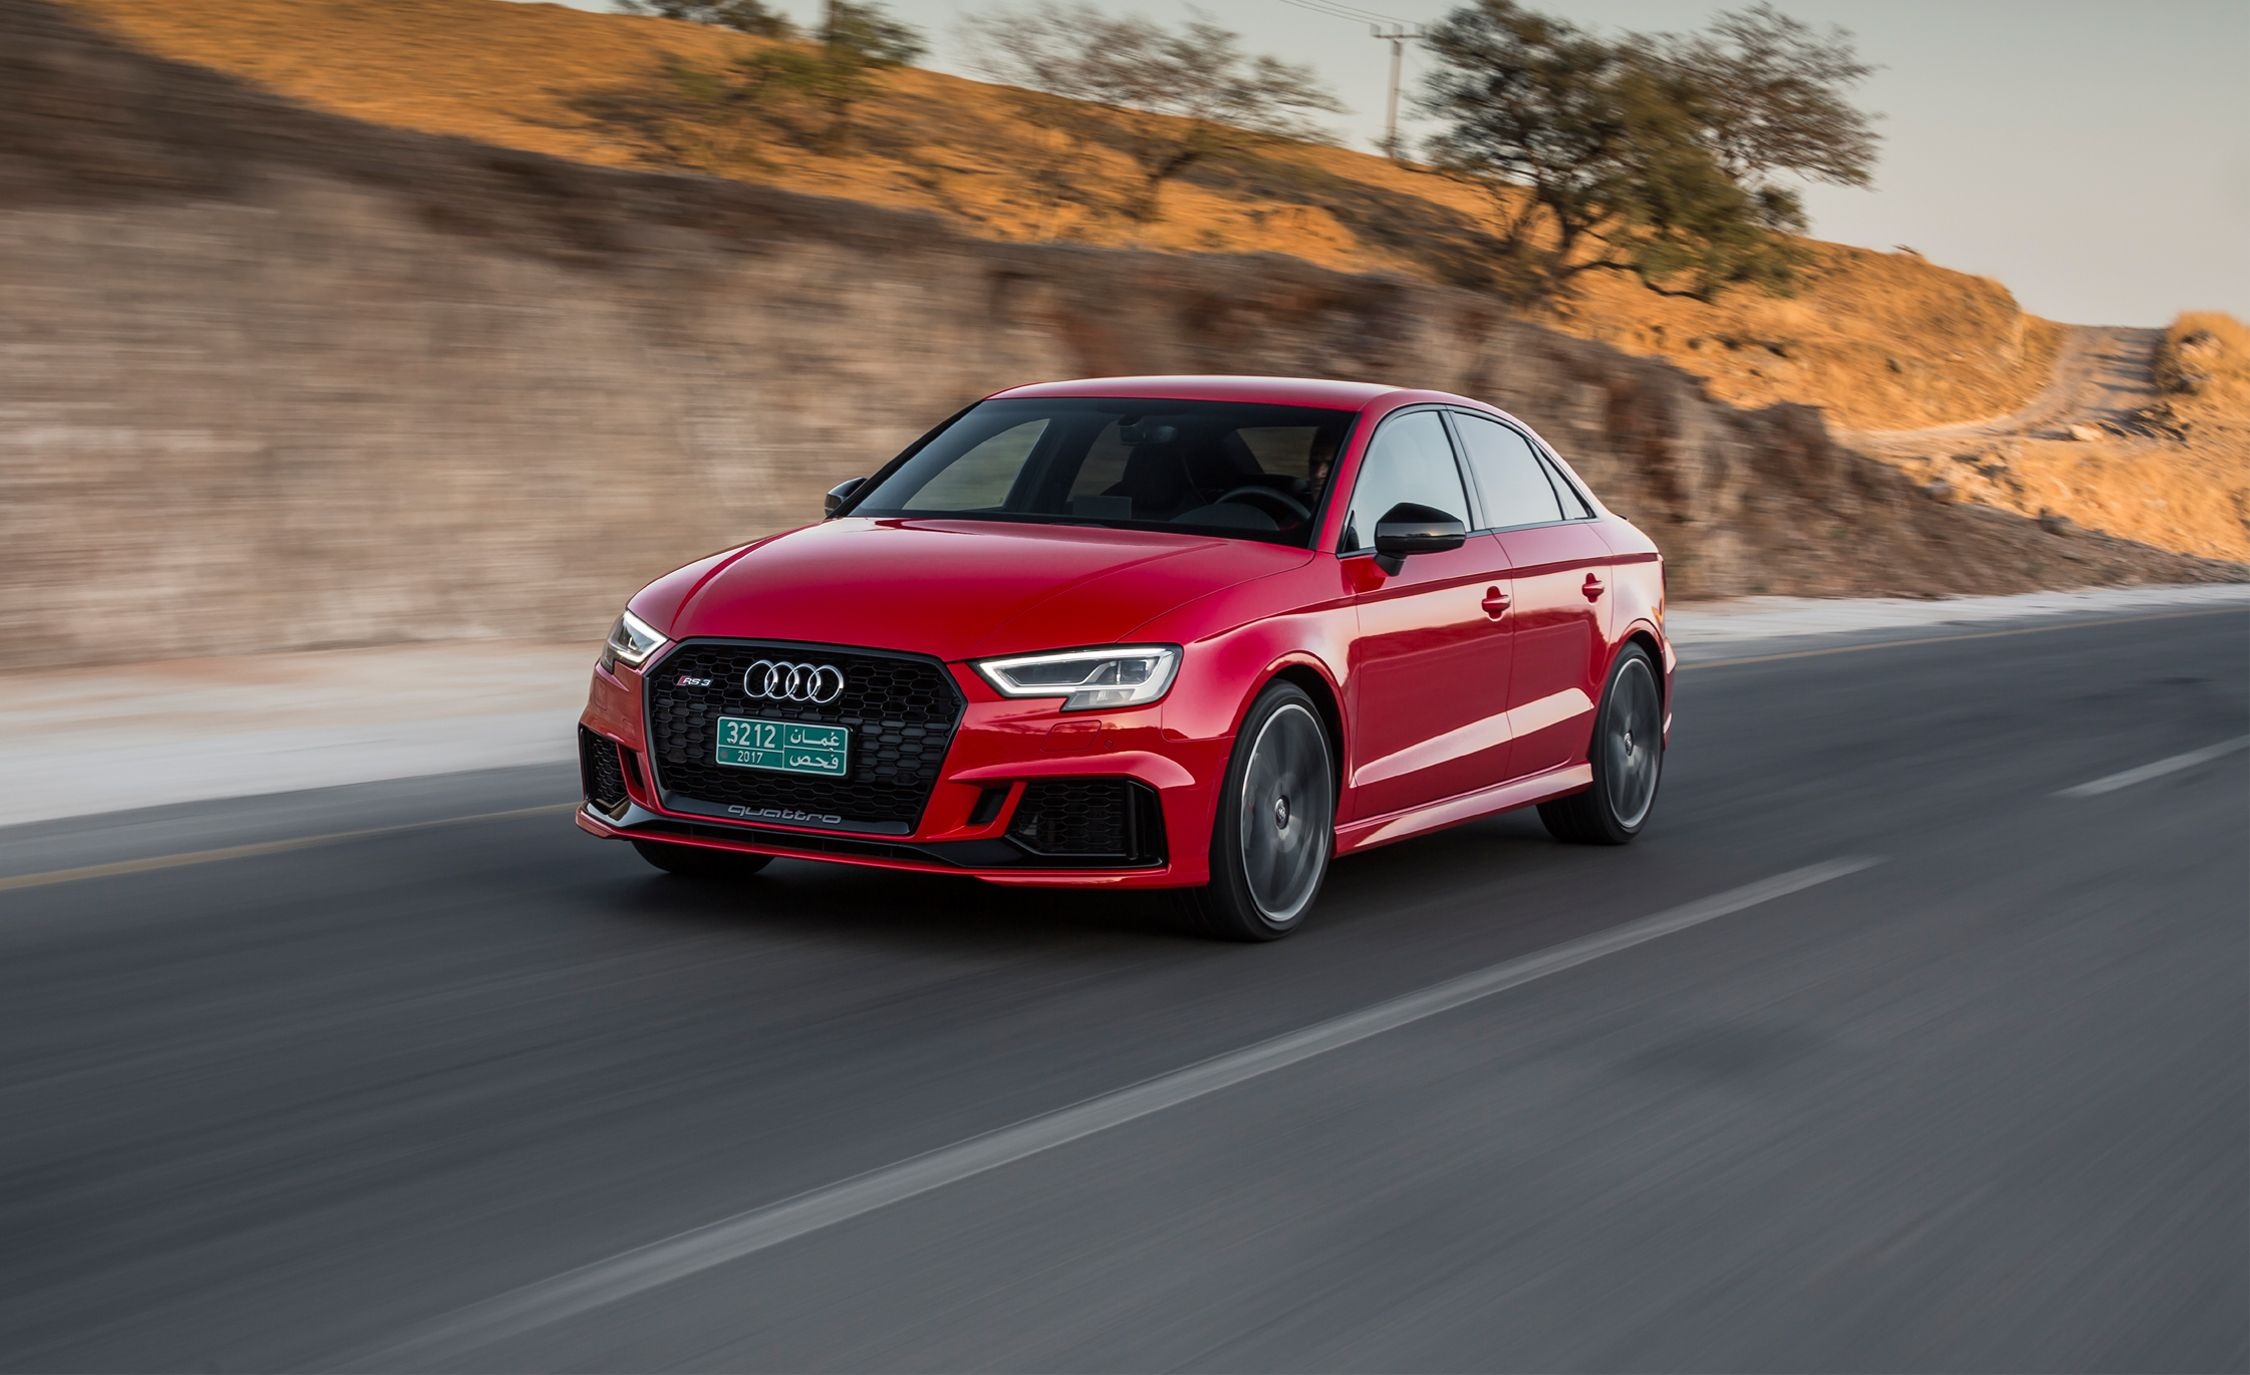 2017 Audi Rs3 First Drive Review Car And Driver